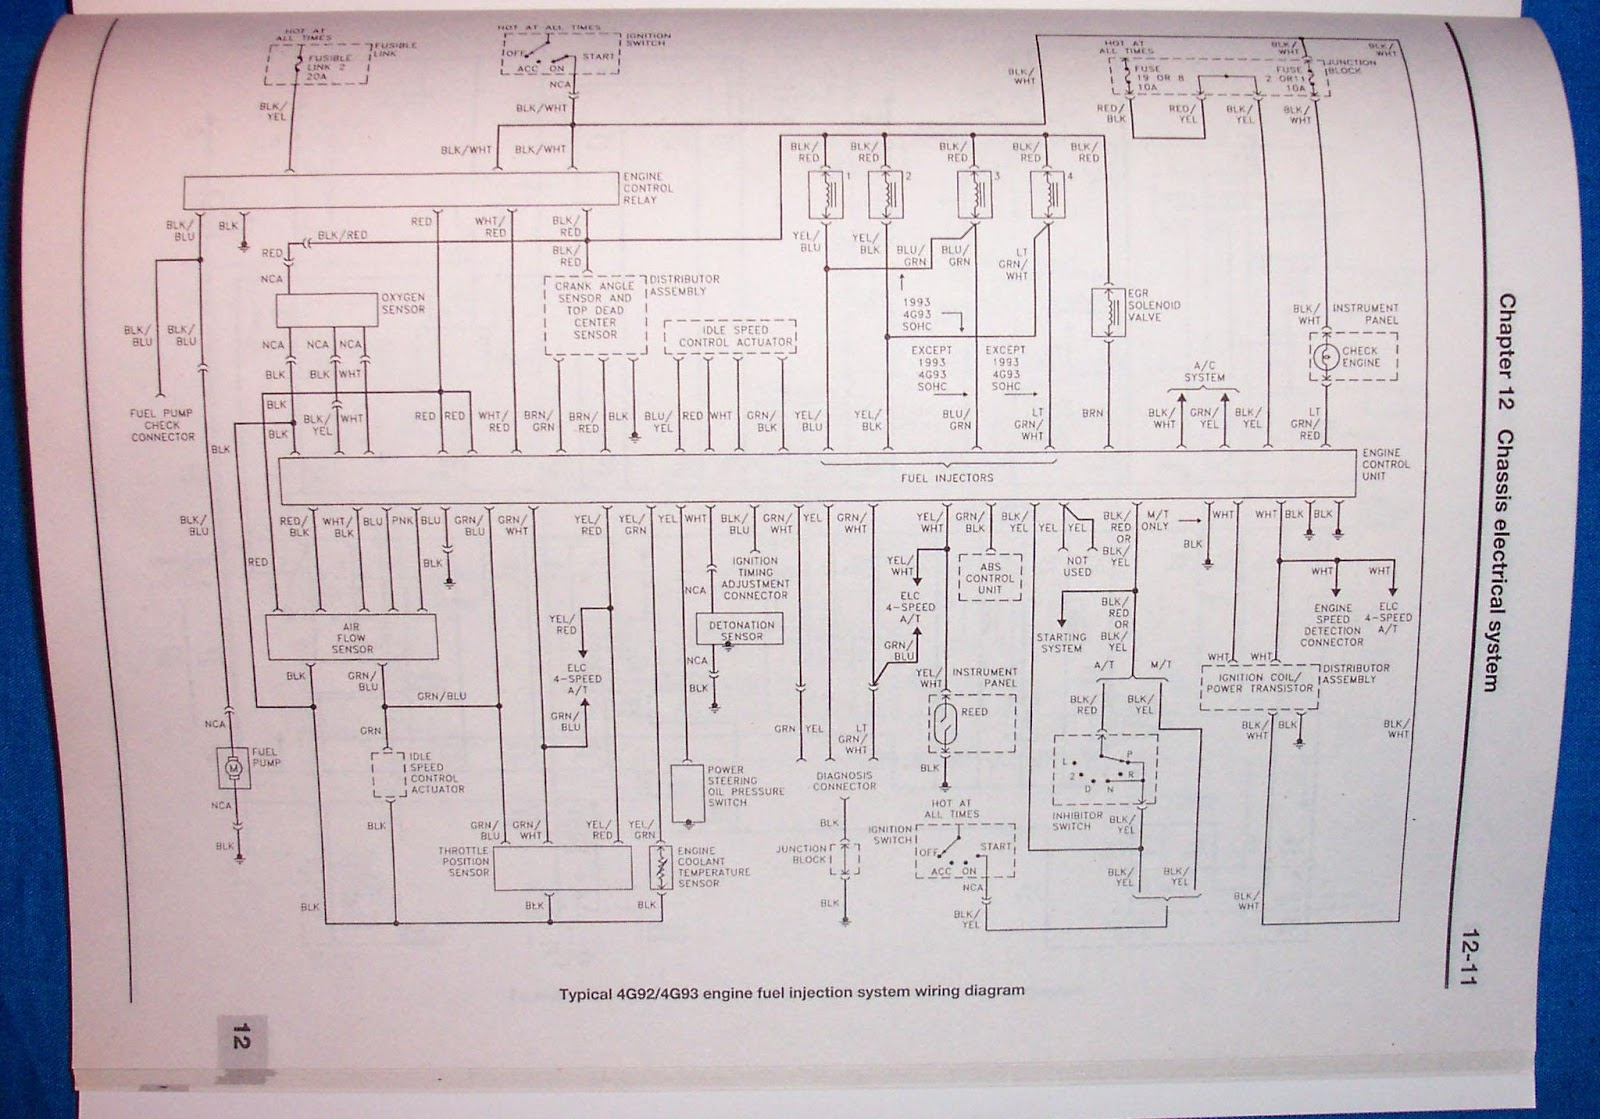 mitsubishi 4g92 engine diagram wiring diagram operations mitsubishi 4g92 engine diagram [ 1600 x 1119 Pixel ]